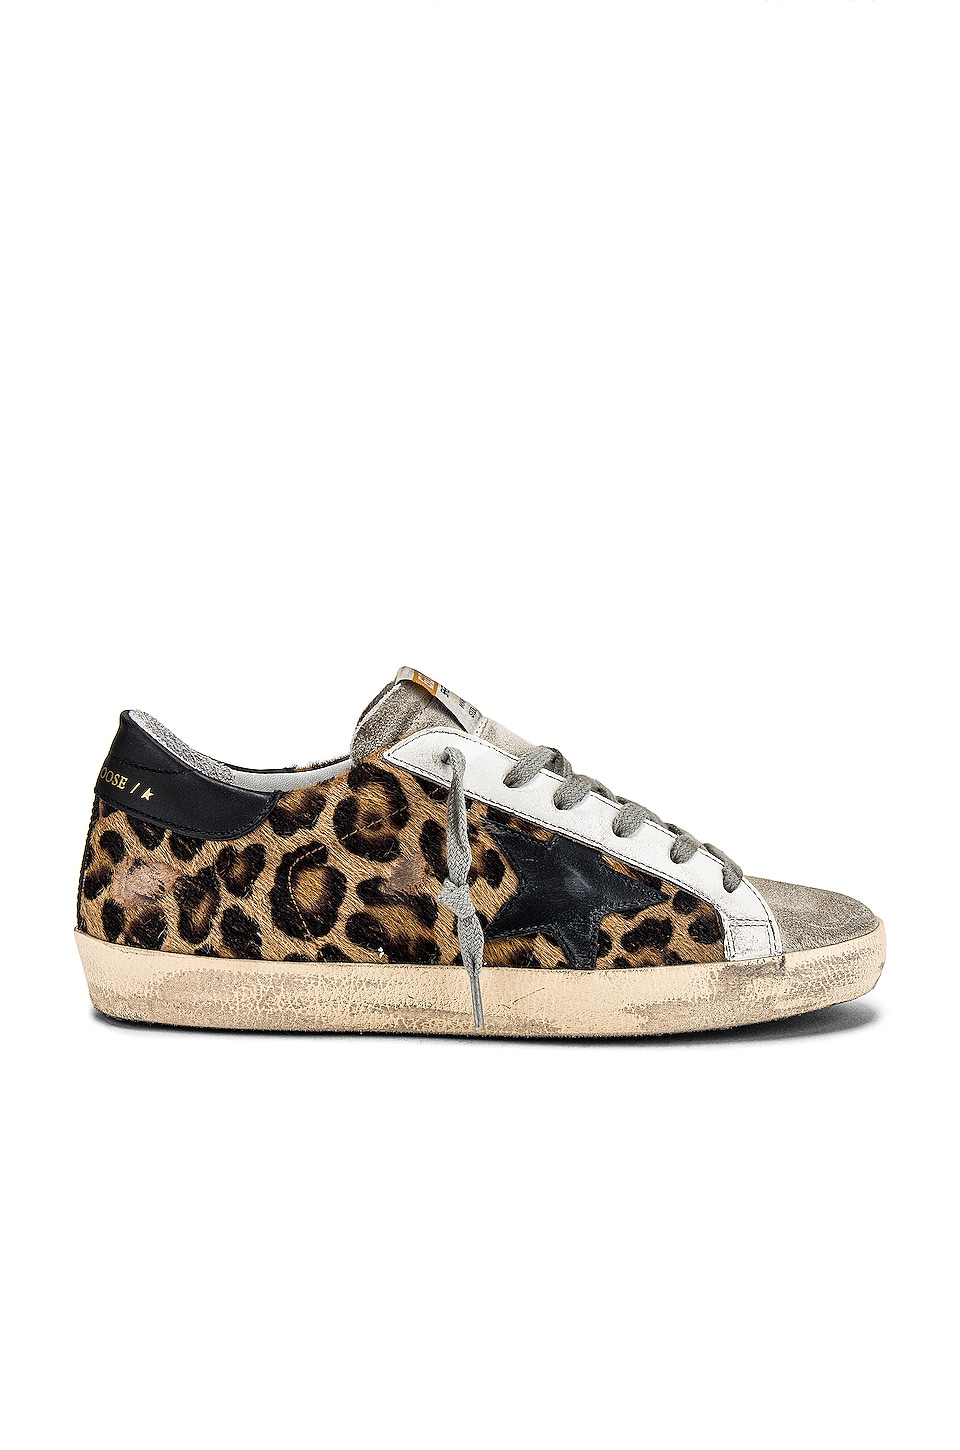 Golden Goose Superstar Sneaker in Snow Leopard & Black Star